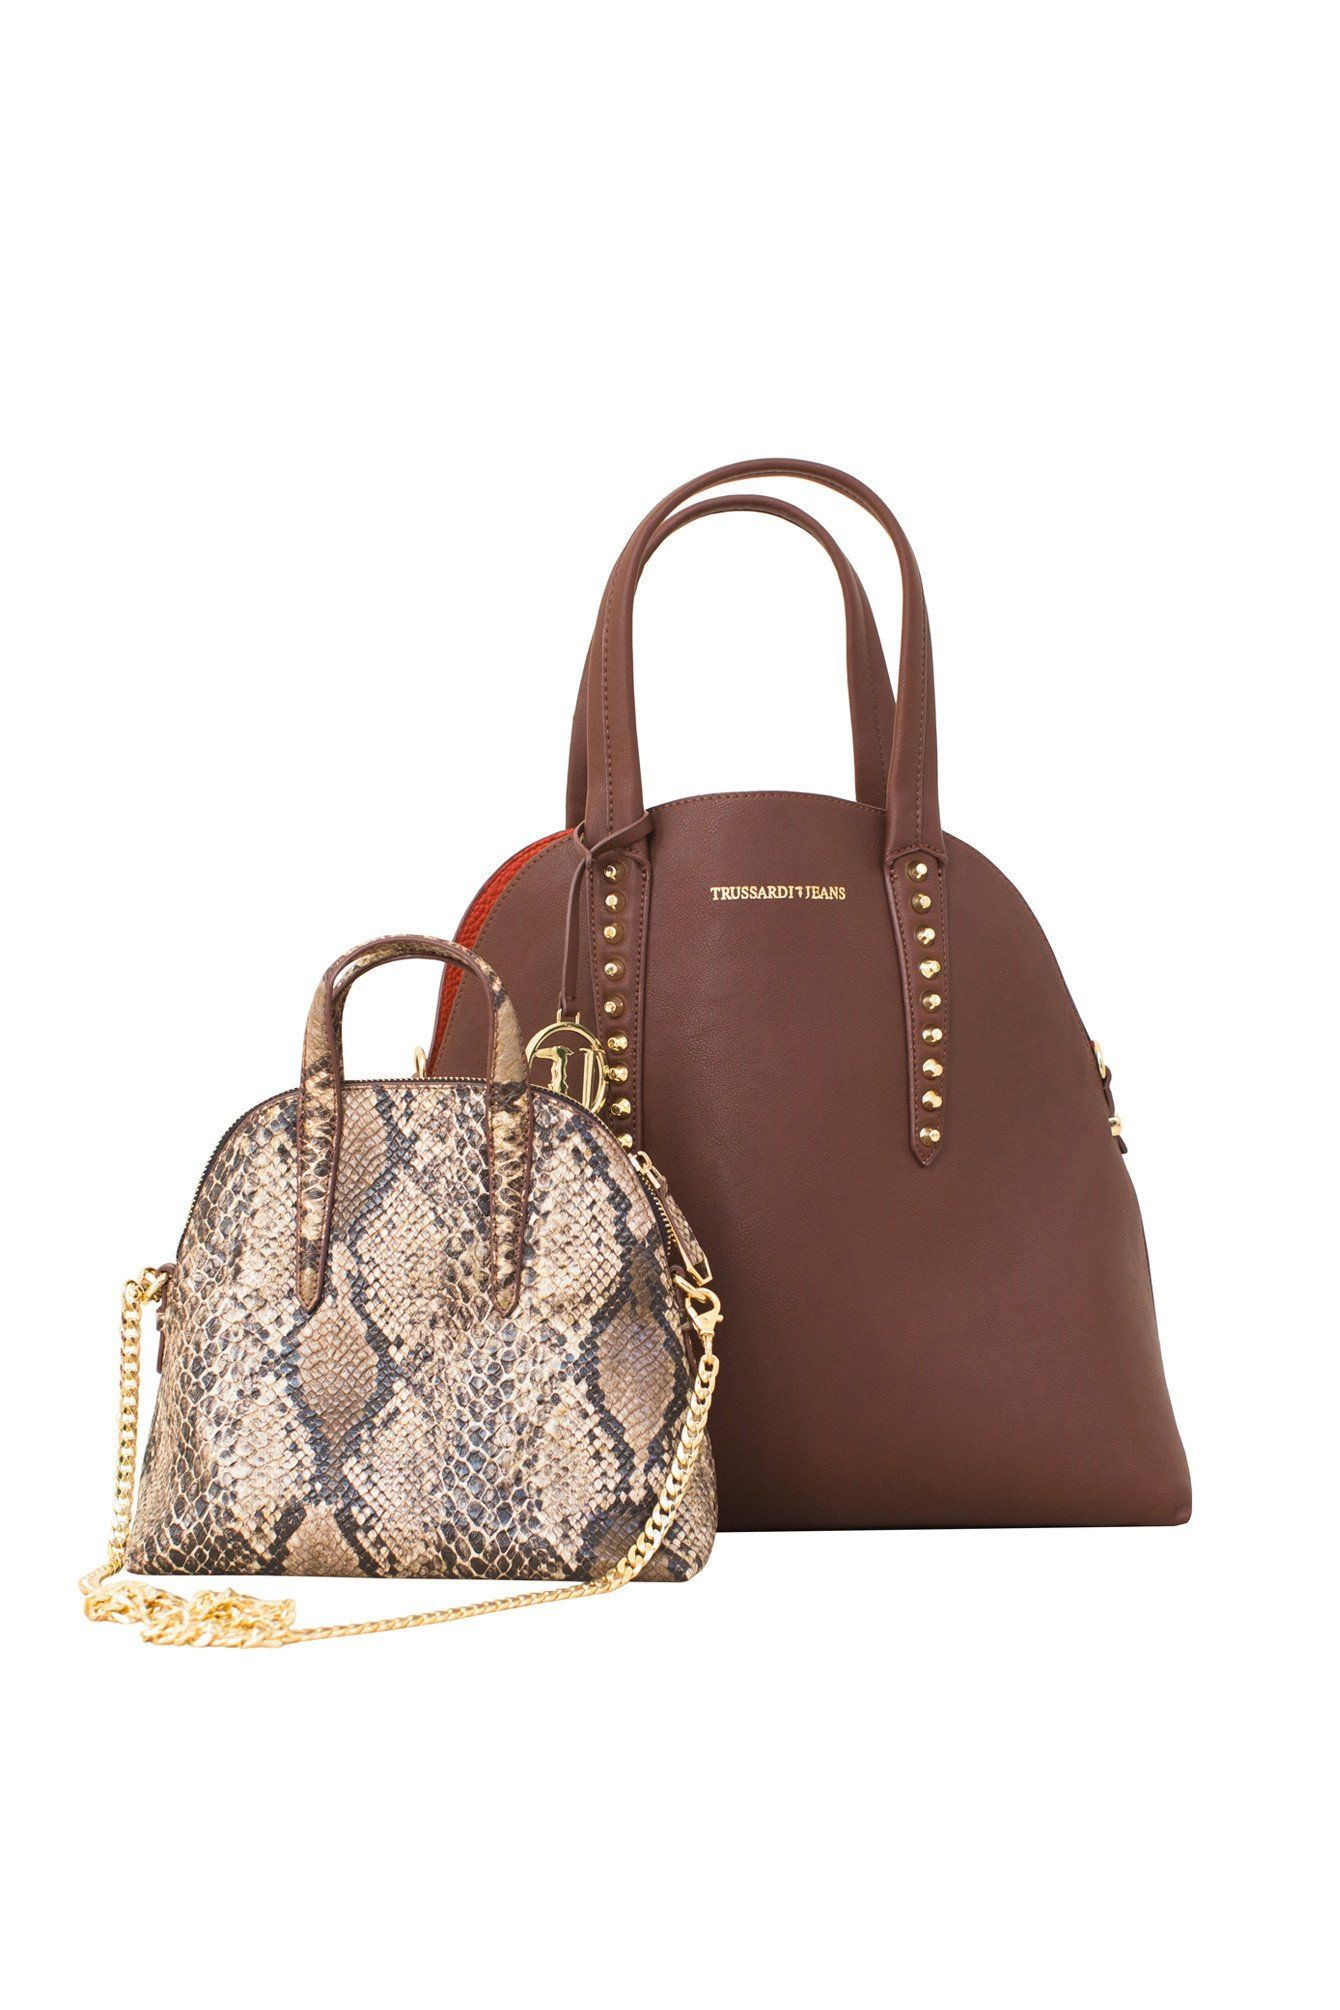 4f9a17946bd7 The Reversible Aspen Combo bag pulls double duty! A different shade on each  side and a faux leather mini bag in crocodile print. This handbags features  ...